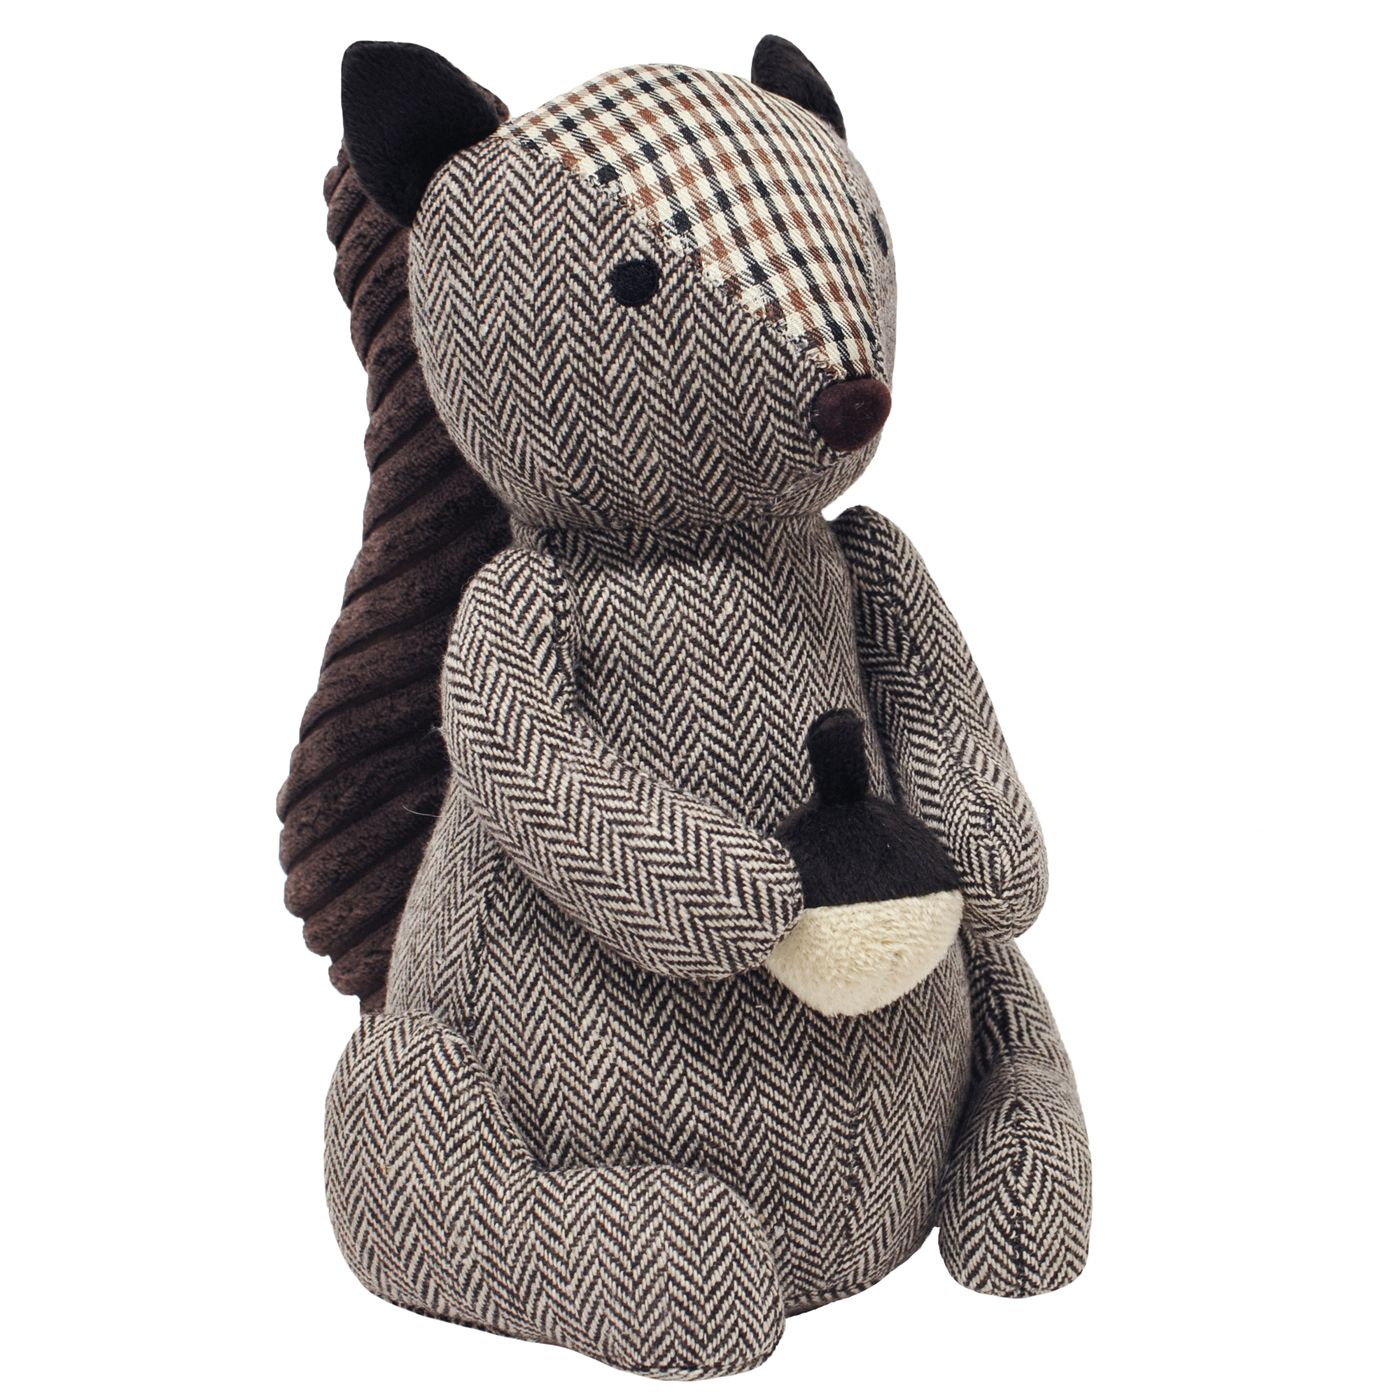 Squirrel Doorstop, Brown